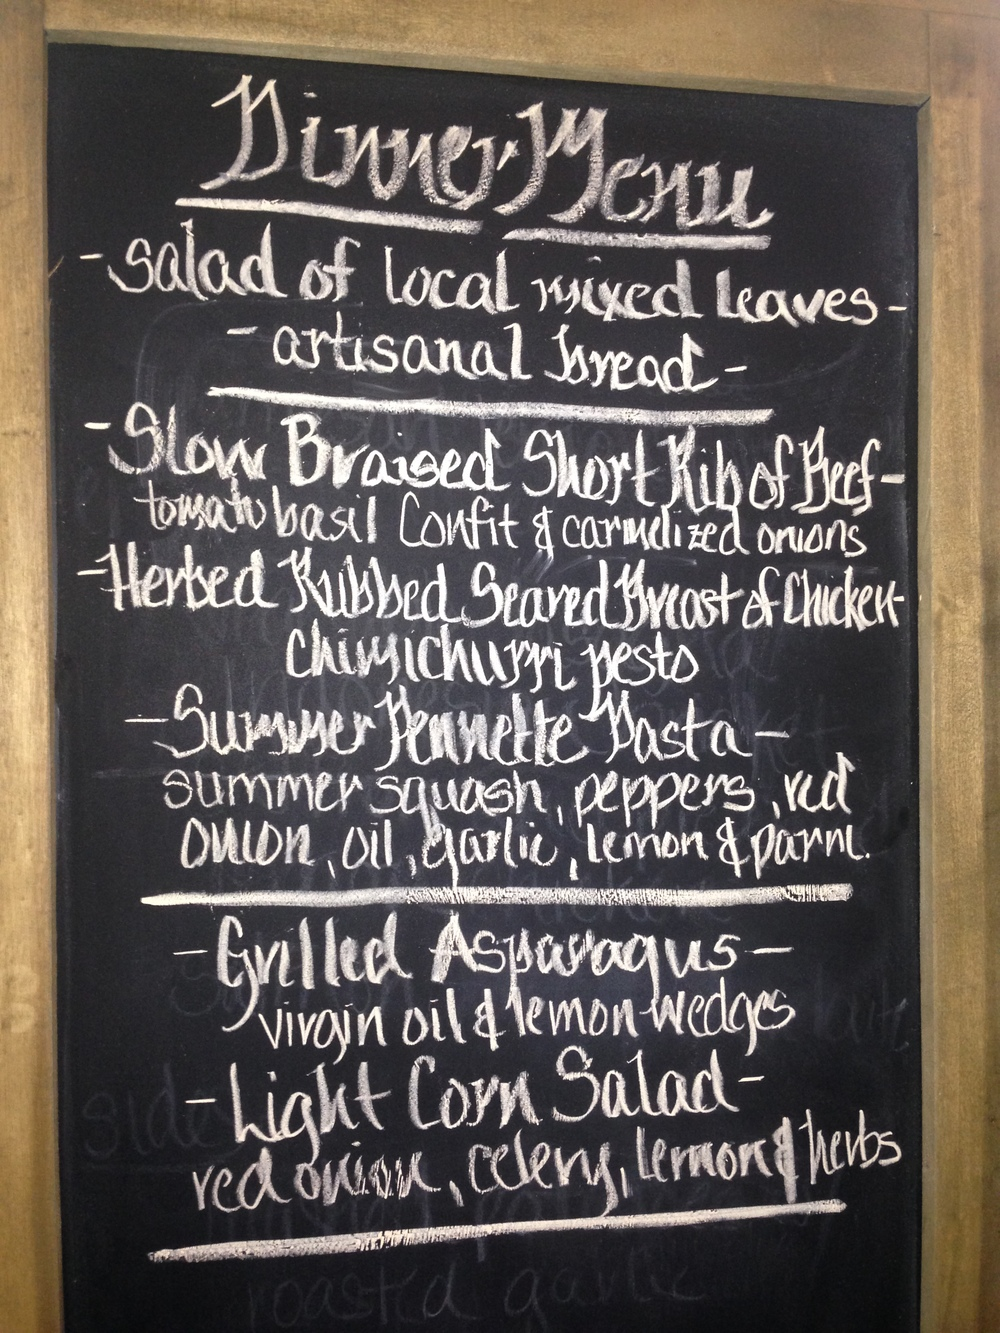 One example of our endless menu options, scroll down for some more nice piccies....